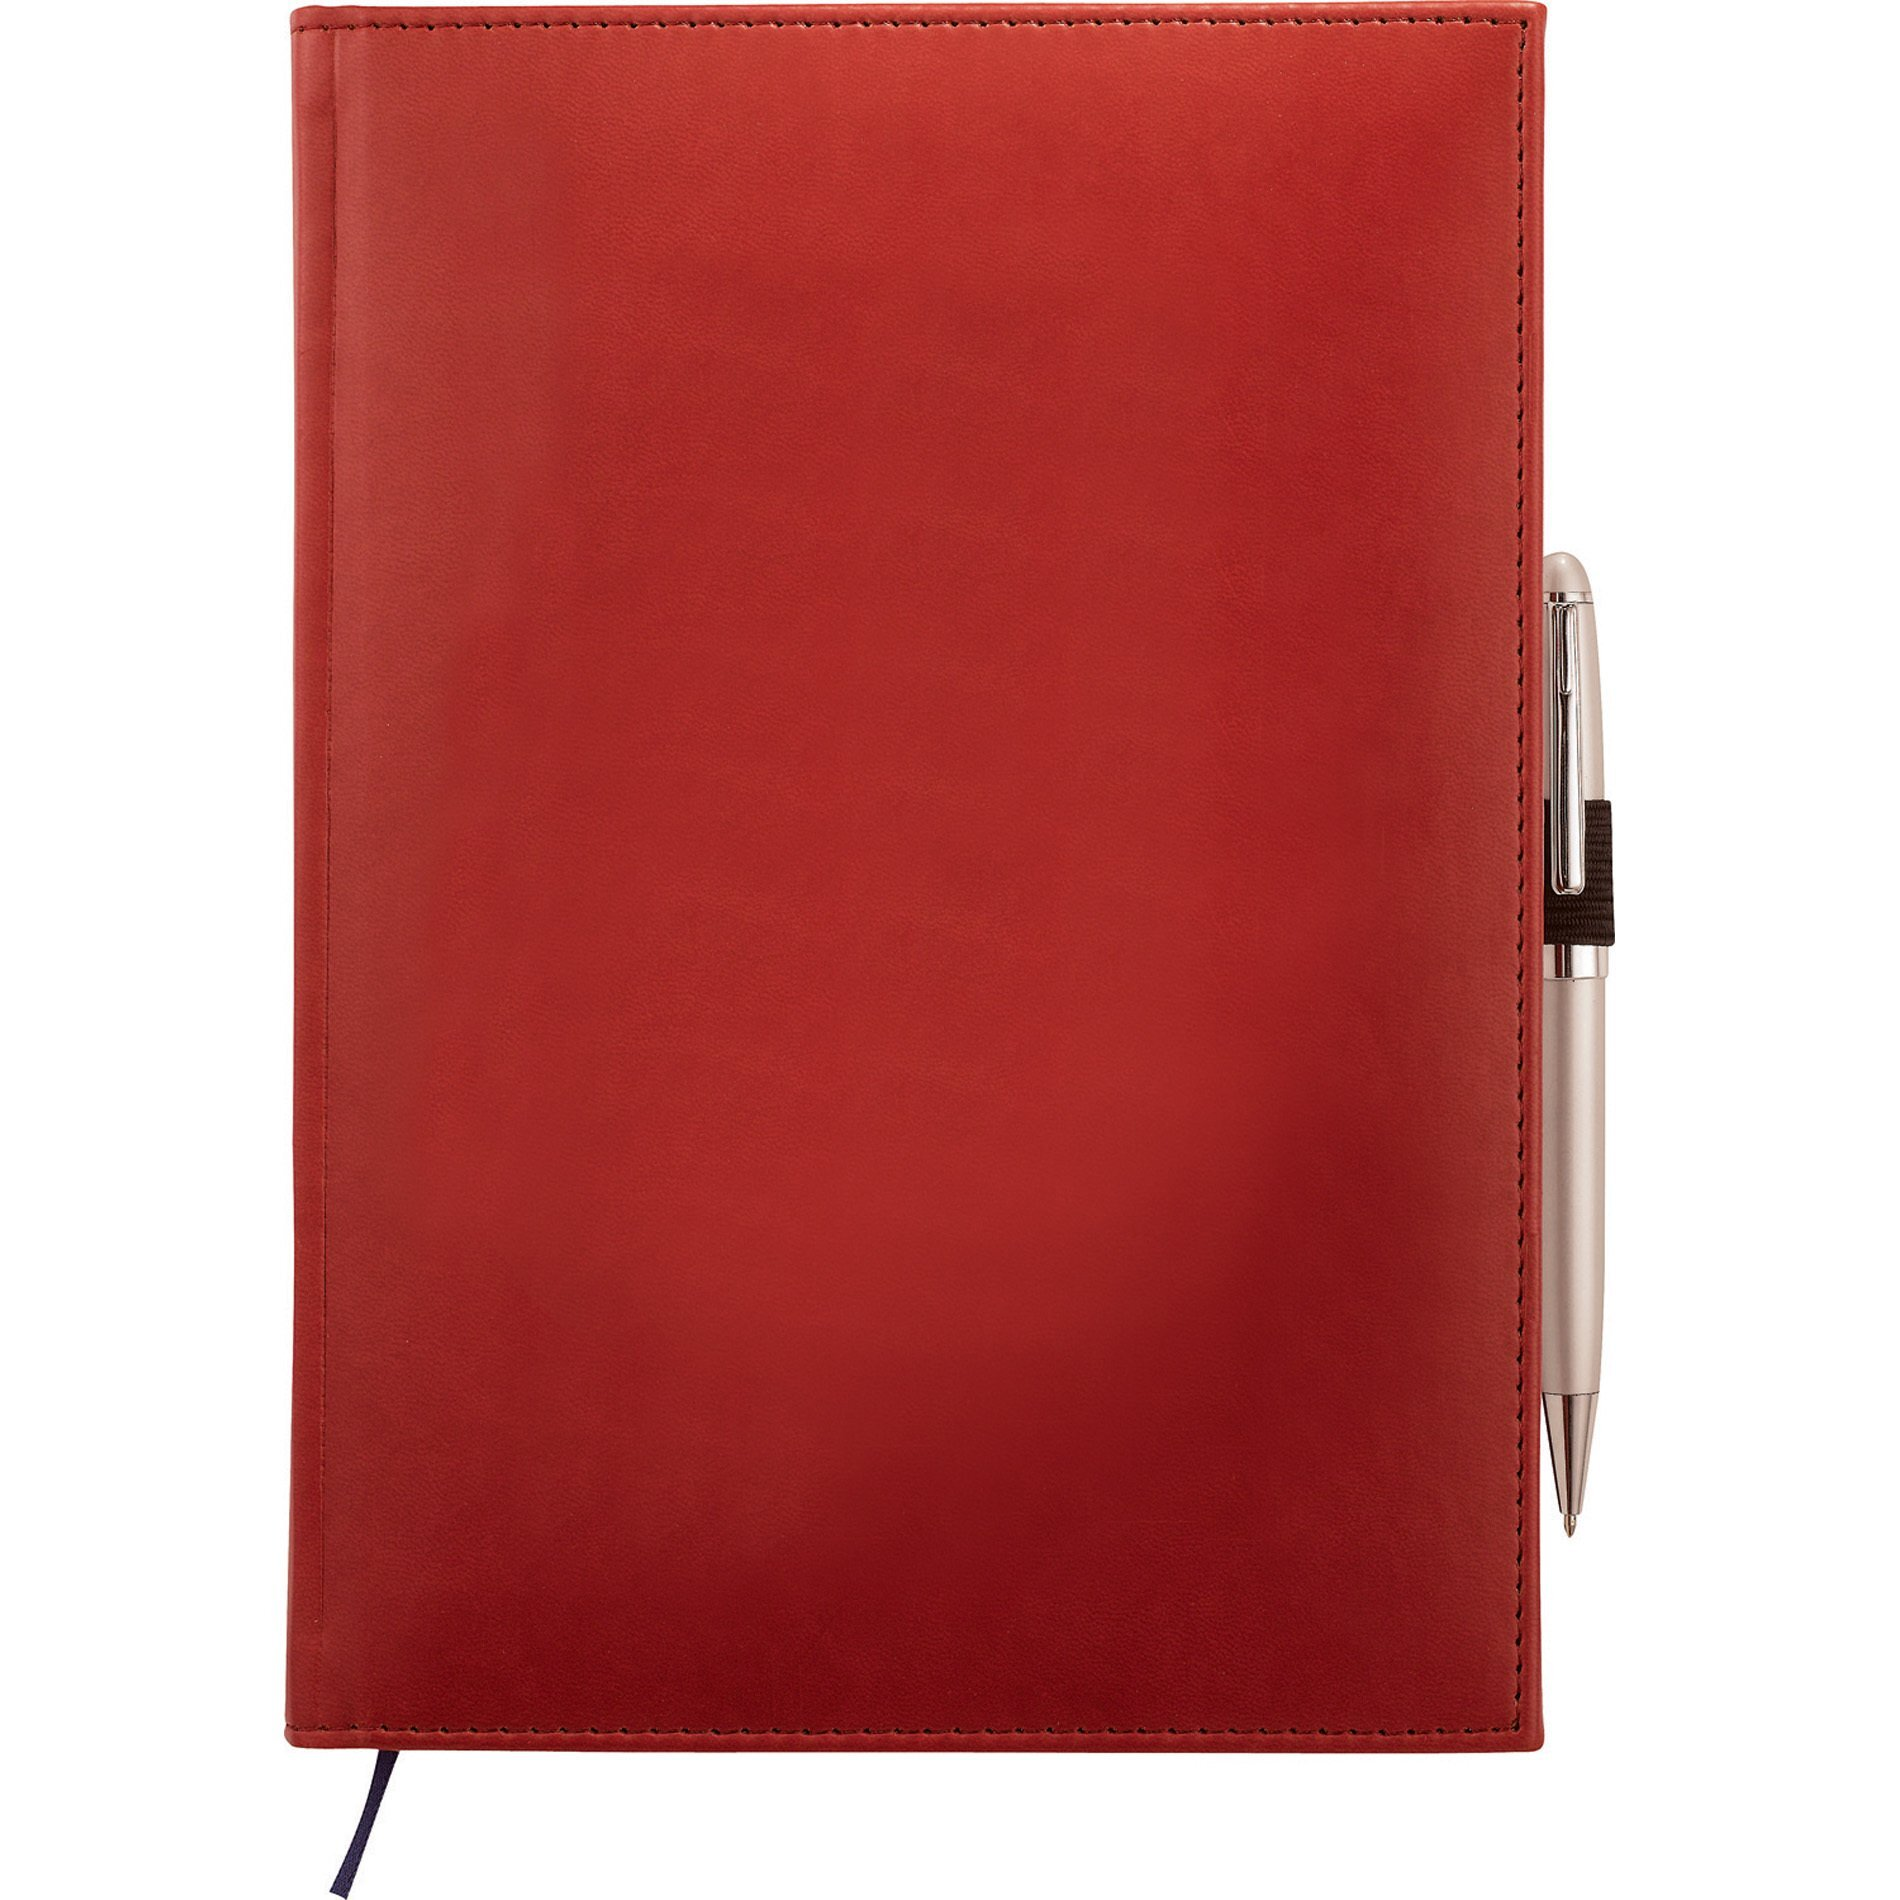 "Pedova Large Bound JournalBook, 7"" x 10"""